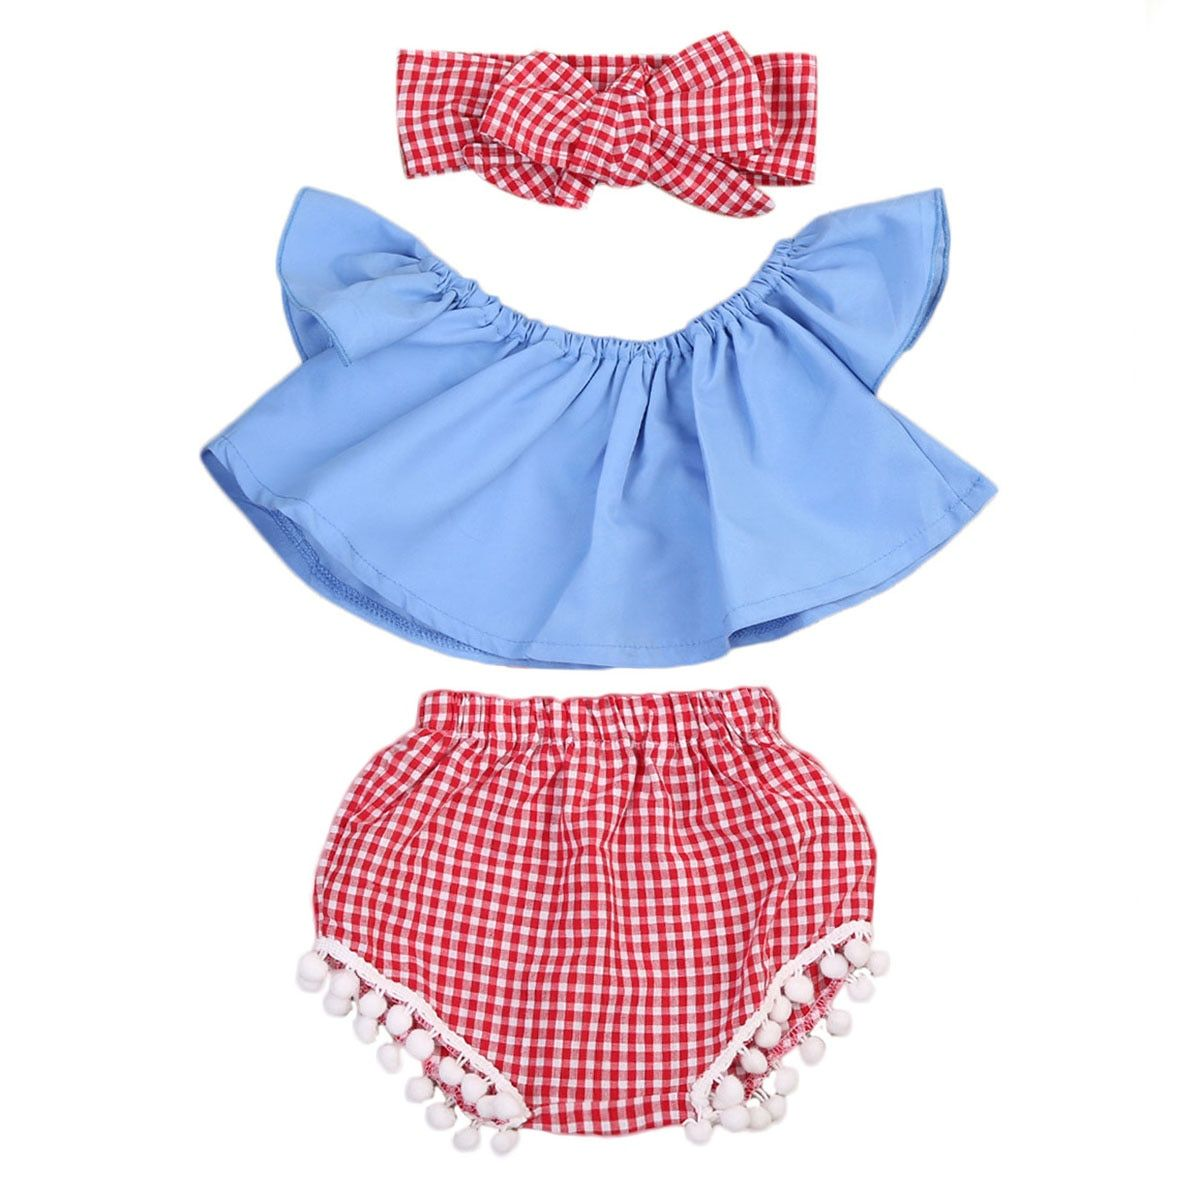 548f0cc562df Toddler Baby Girl Clothes Set Off Shoulder Top T-Shirt+Shorts Pants  +Hairband   Price   6.79   FREE Shipping     kidsclothing